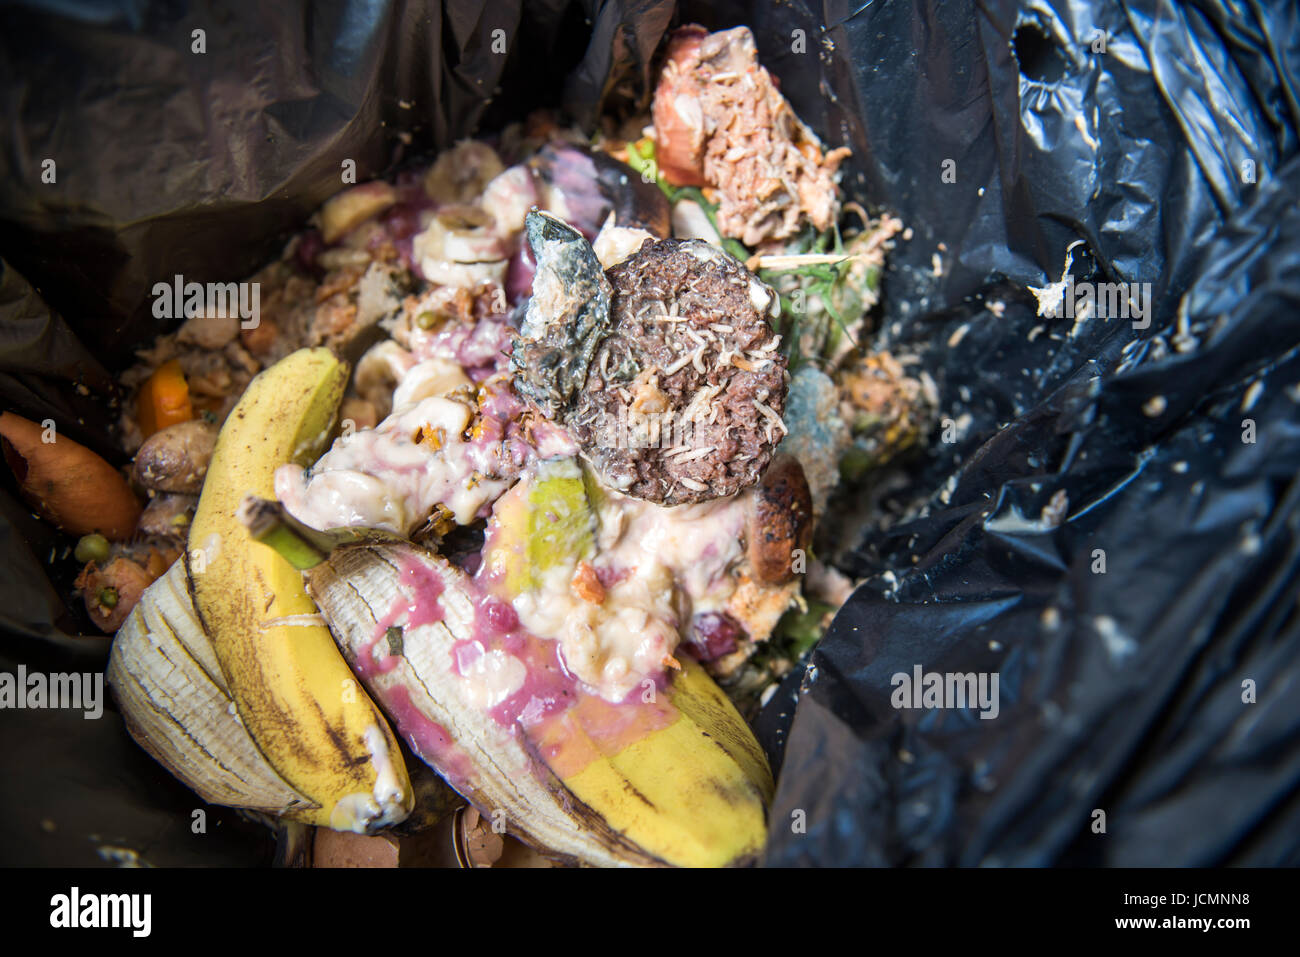 A Domestic Food Waste Container Which Has Become Infested With Stock